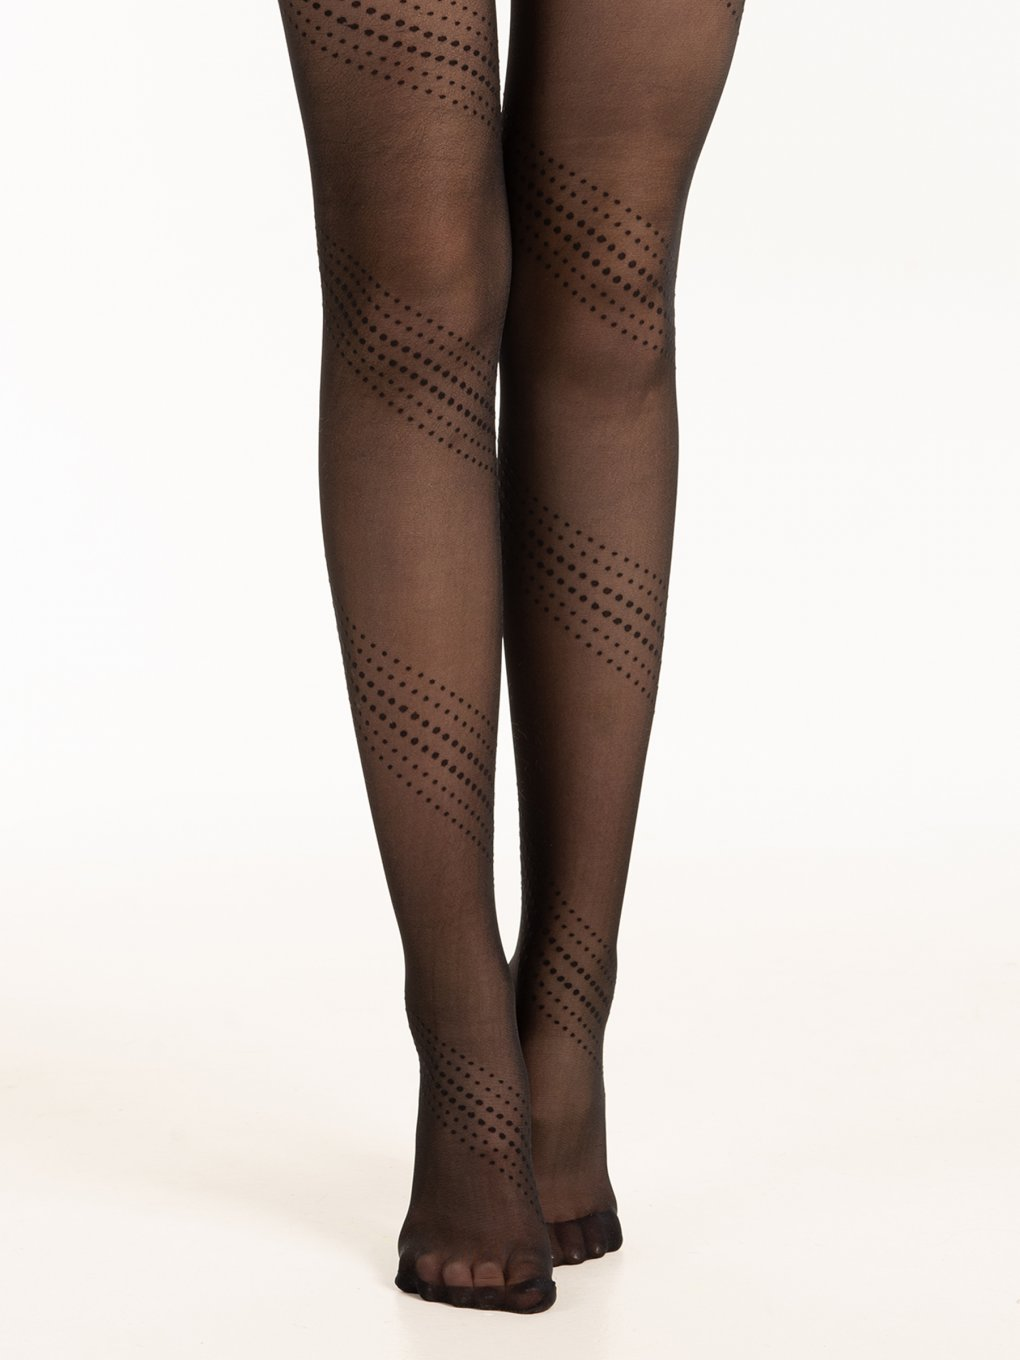 Nylon tights with dot pattern